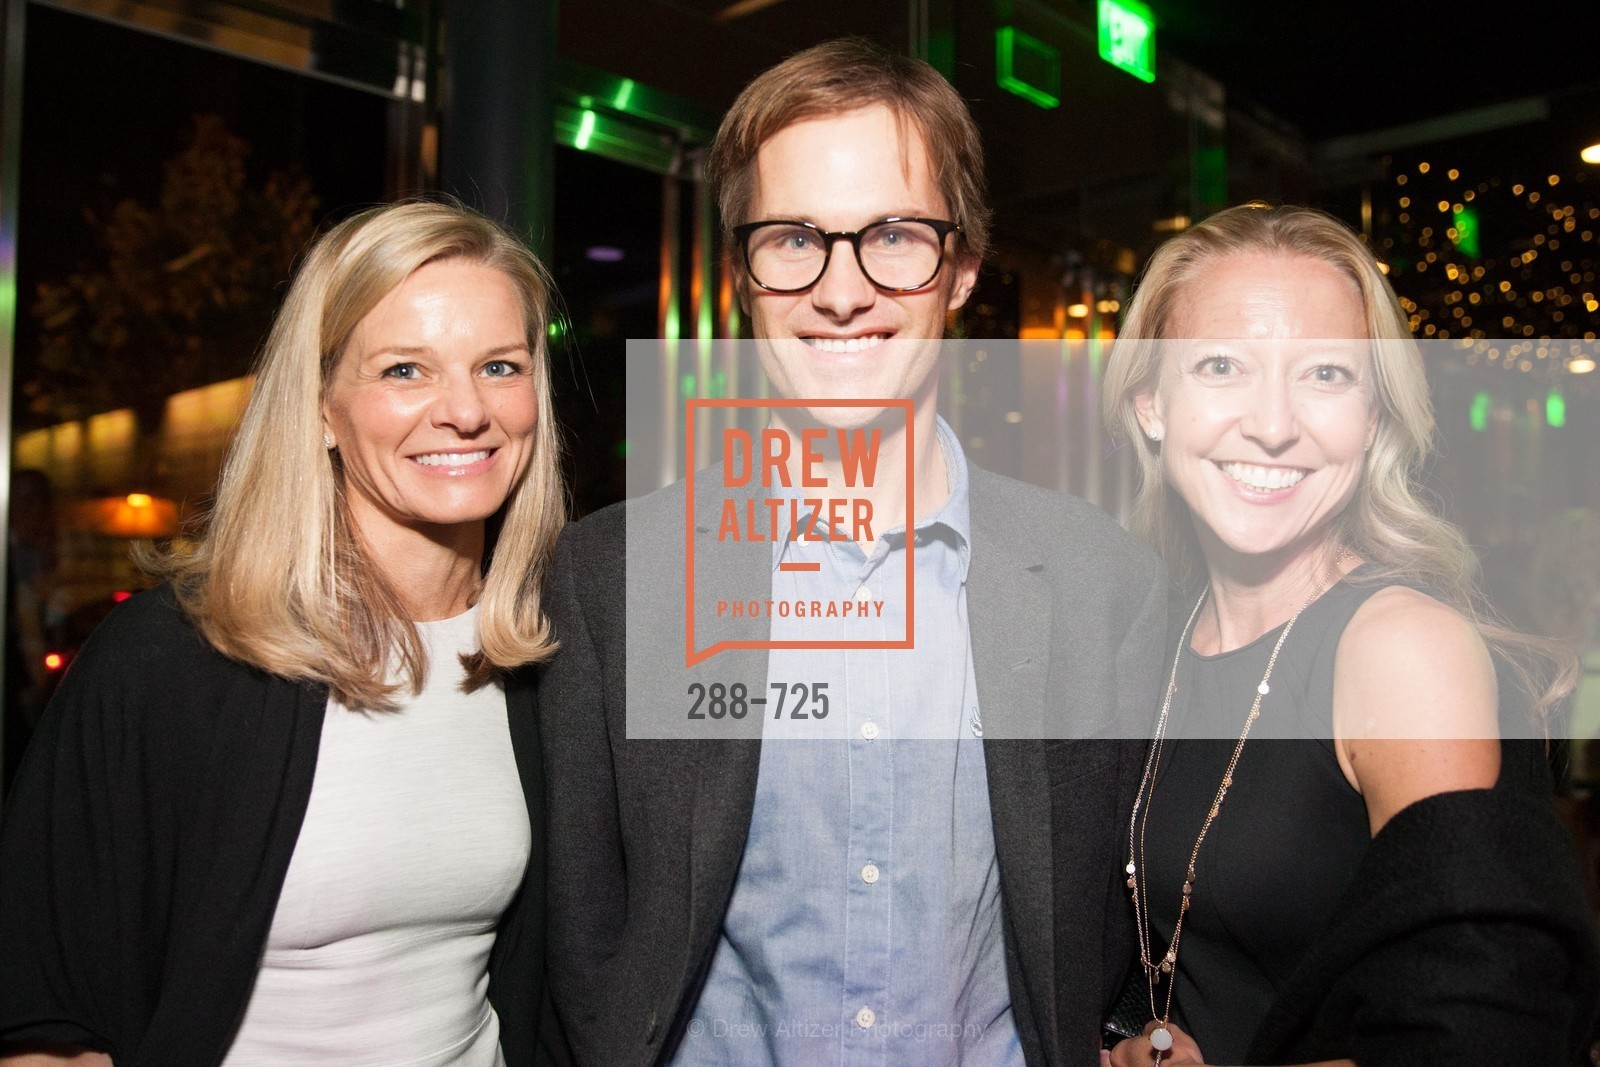 Carey Wintroub, Kevin Hartz, Kimberly Garfinkel, COMMON SENSE Media Awards 2015, US, May 14th, 2015,Drew Altizer, Drew Altizer Photography, full-service event agency, private events, San Francisco photographer, photographer California